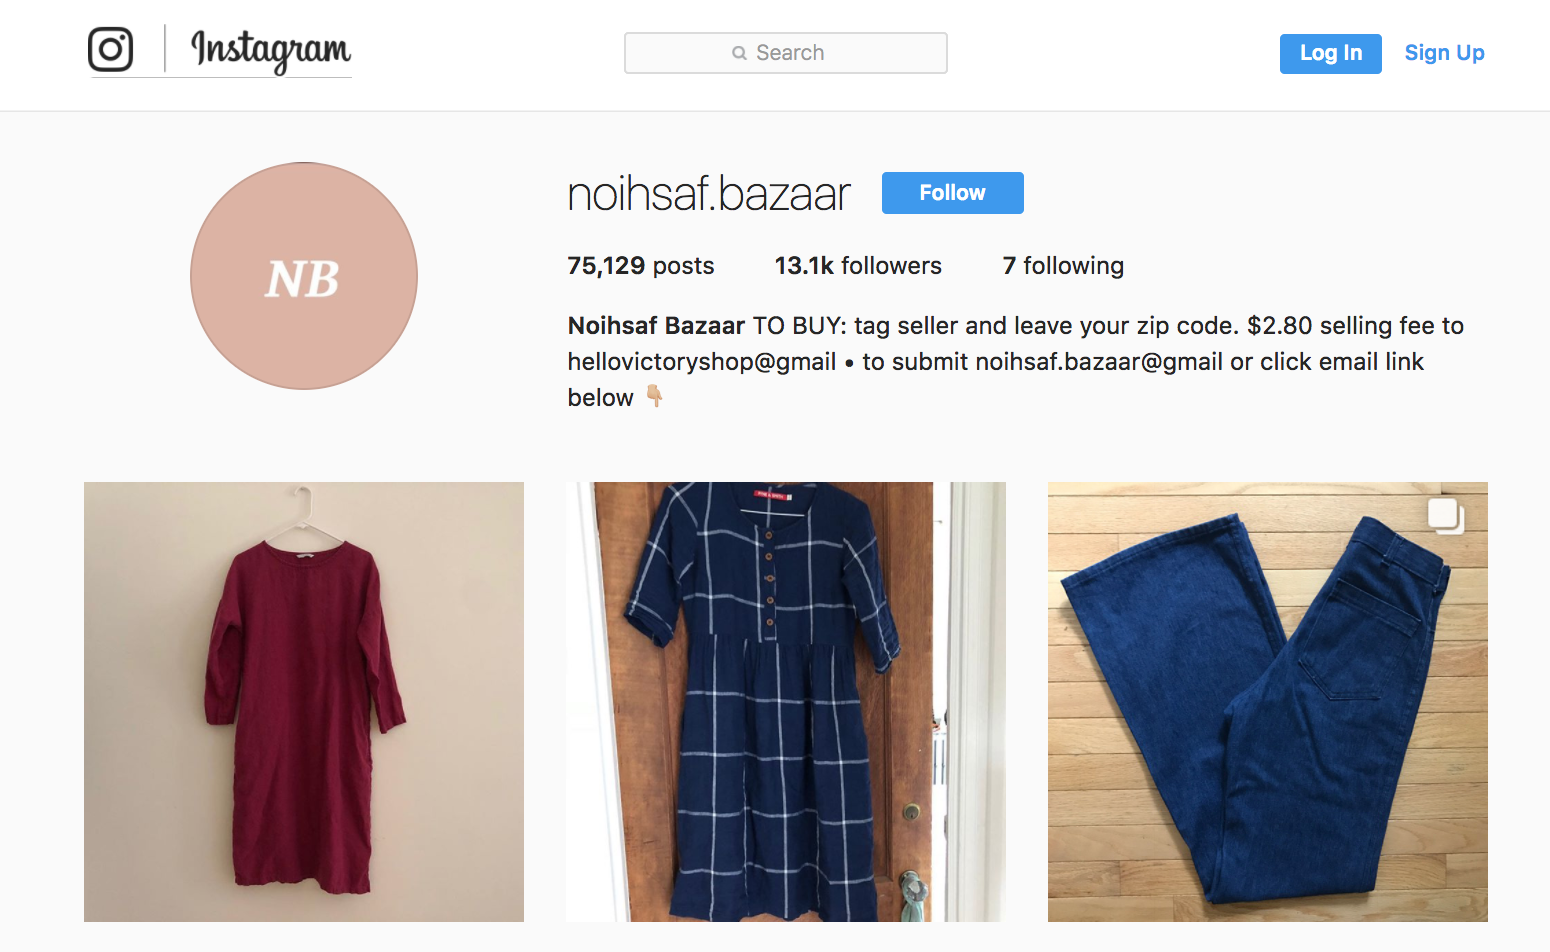 Poshmark Vs Ebay Vs Depop The Ultimate Resale Site Showdown The Luxe Strategist